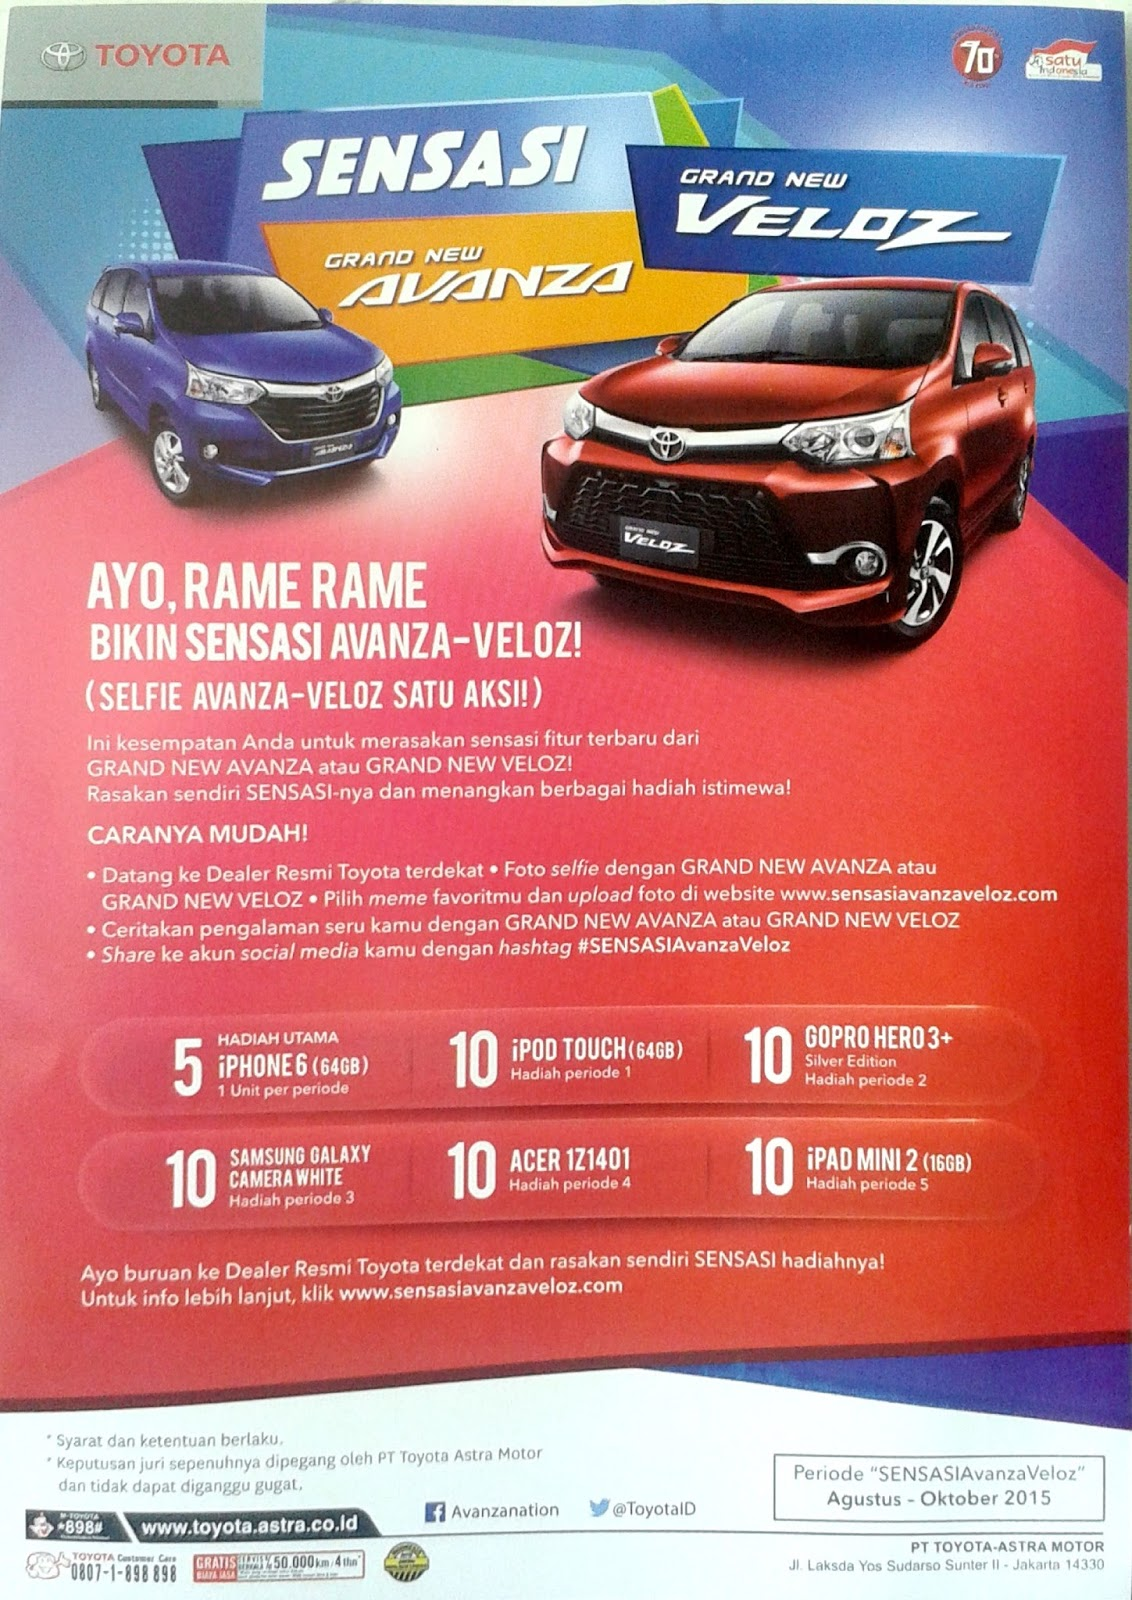 Harga Grand New Avanza Veloz Toyota Yaris Trd Sportivo 2018 Sensasi And Auto 2000